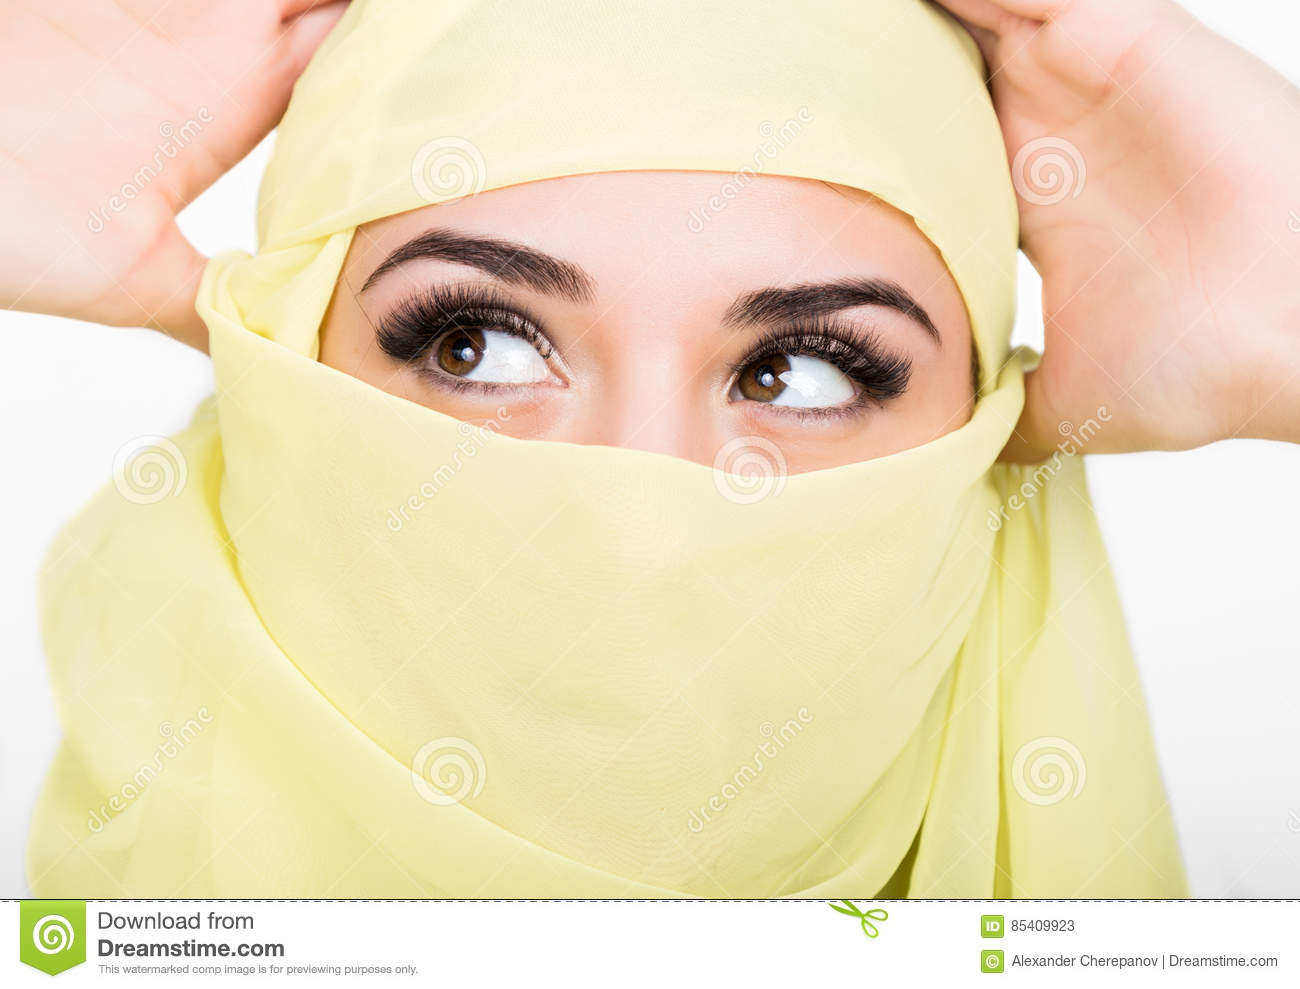 Asian Girl With Brown Eyes Posing In A Yellow Scarf, Muslimah Model In Hijab Isolated -1665